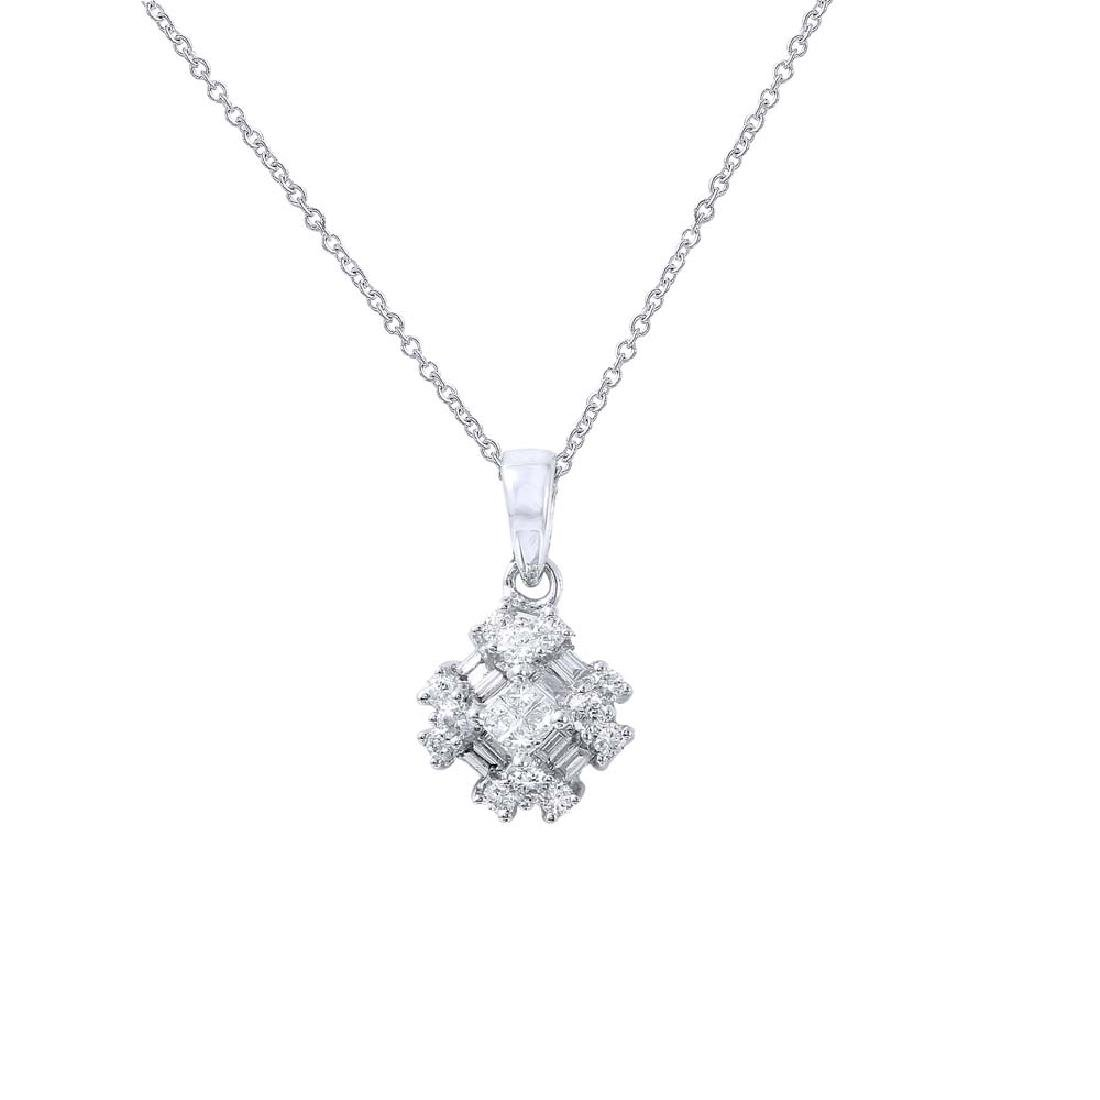 Genuine 0.44 TCW 18K White Gold Ladies Necklace